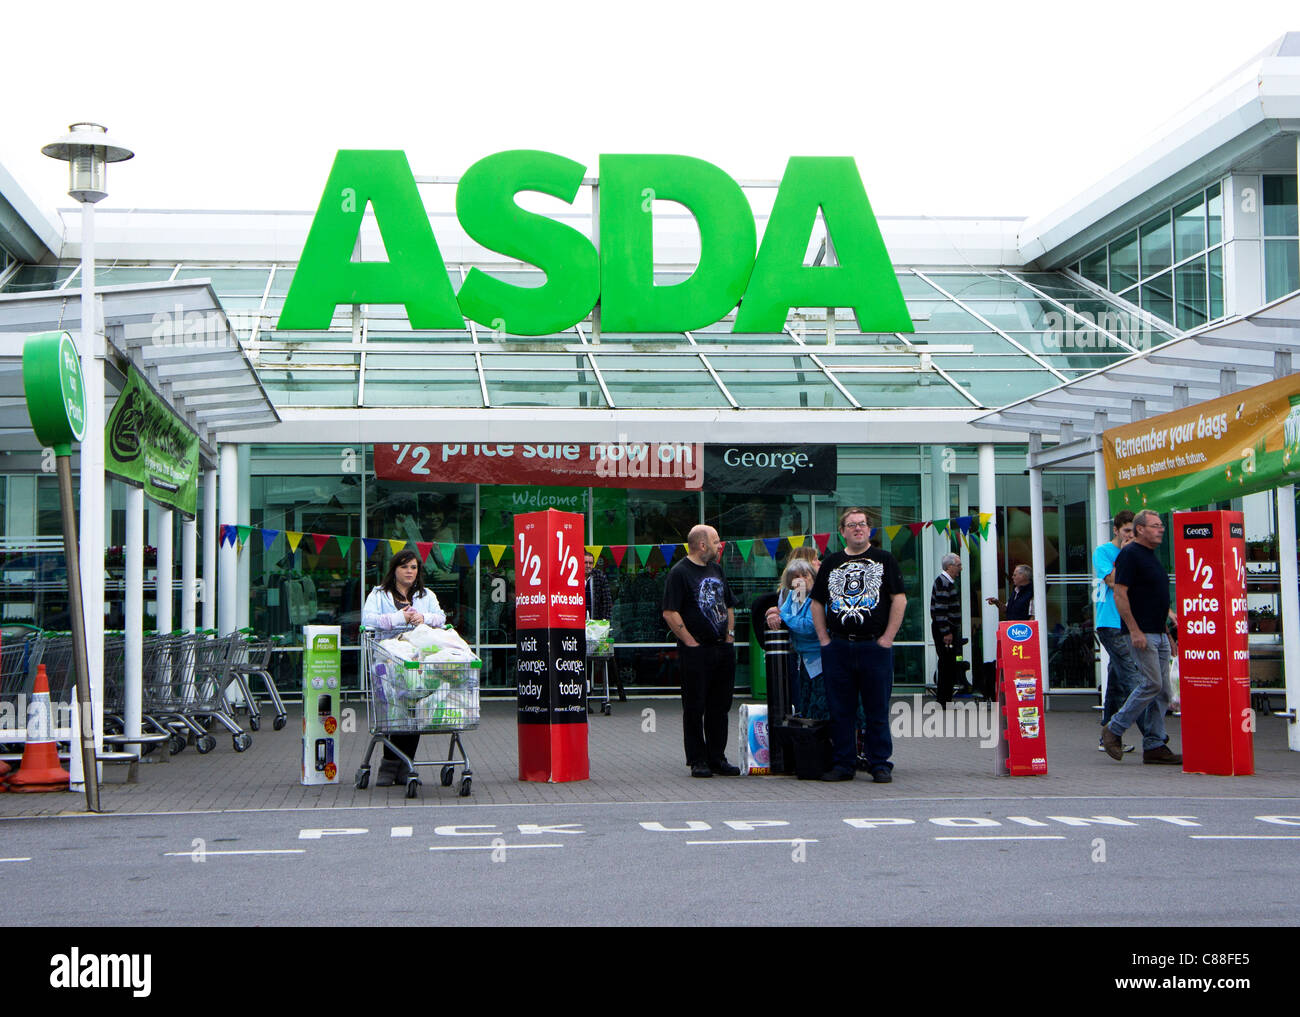 Marvelous People Waiting For Taxis Outside An Asda Store In Penryn, Cornwall, Uk    Stock